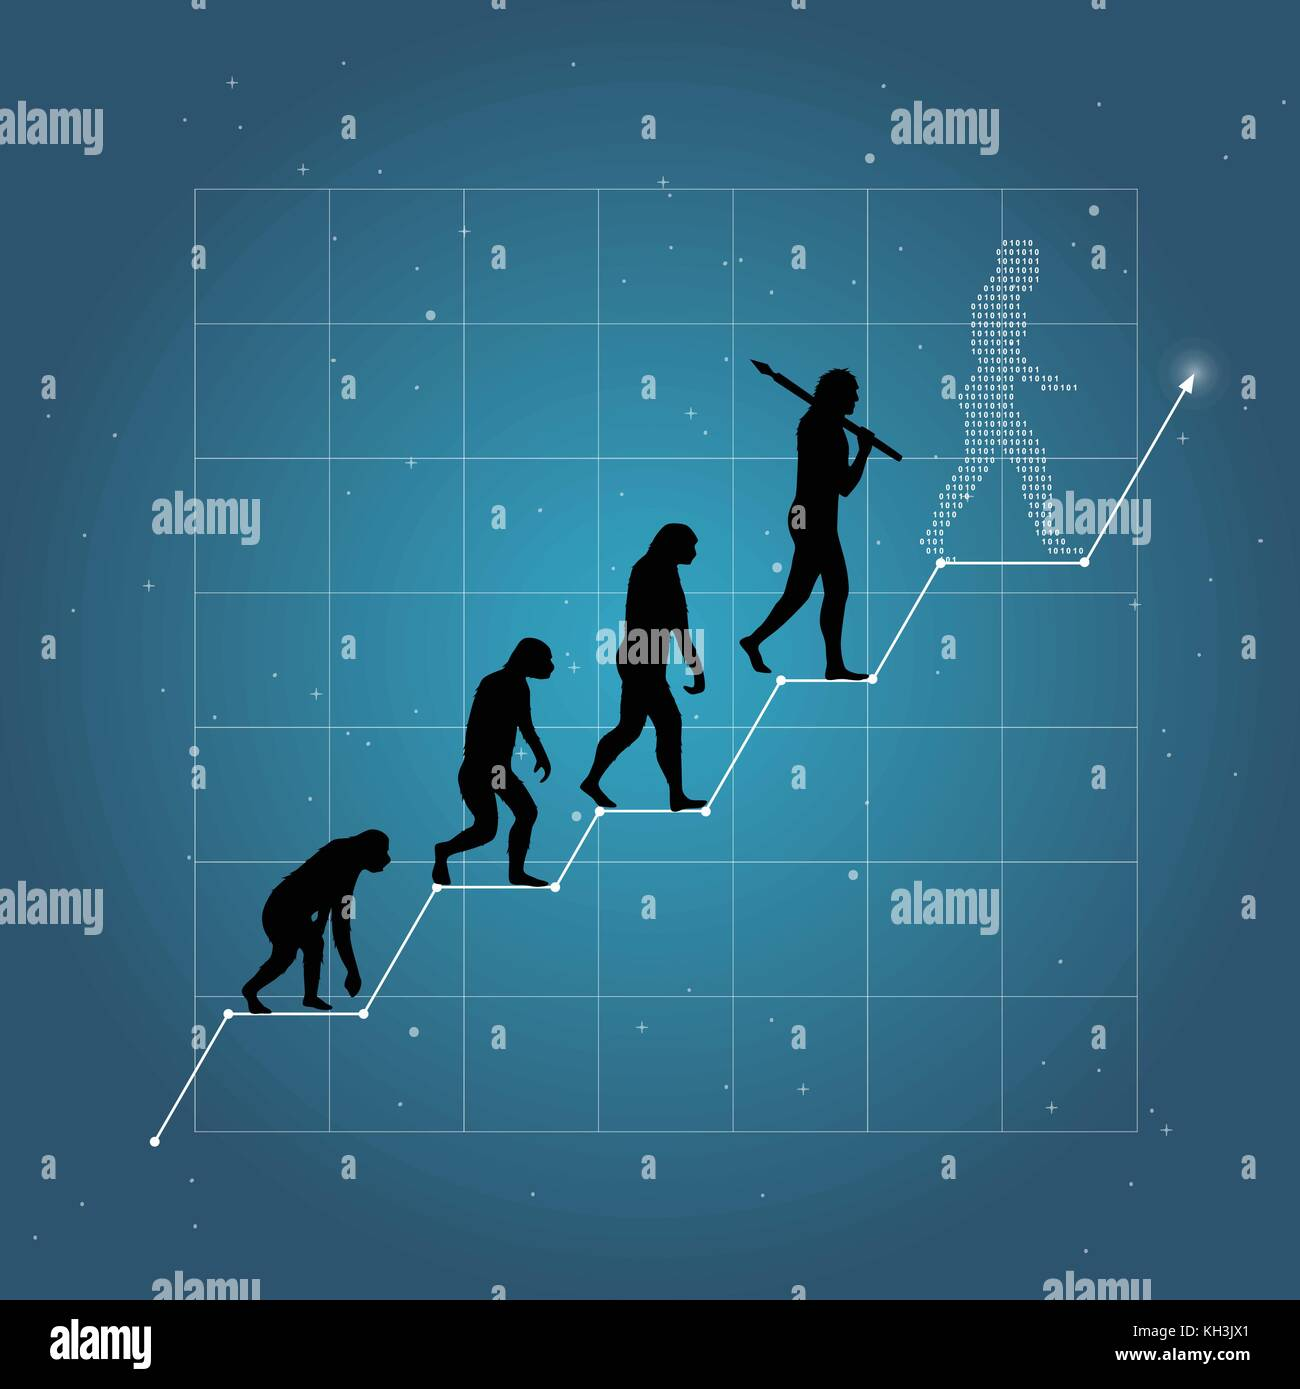 Growth of business or economy as human evolution on chart. Blue background. Stock Vector